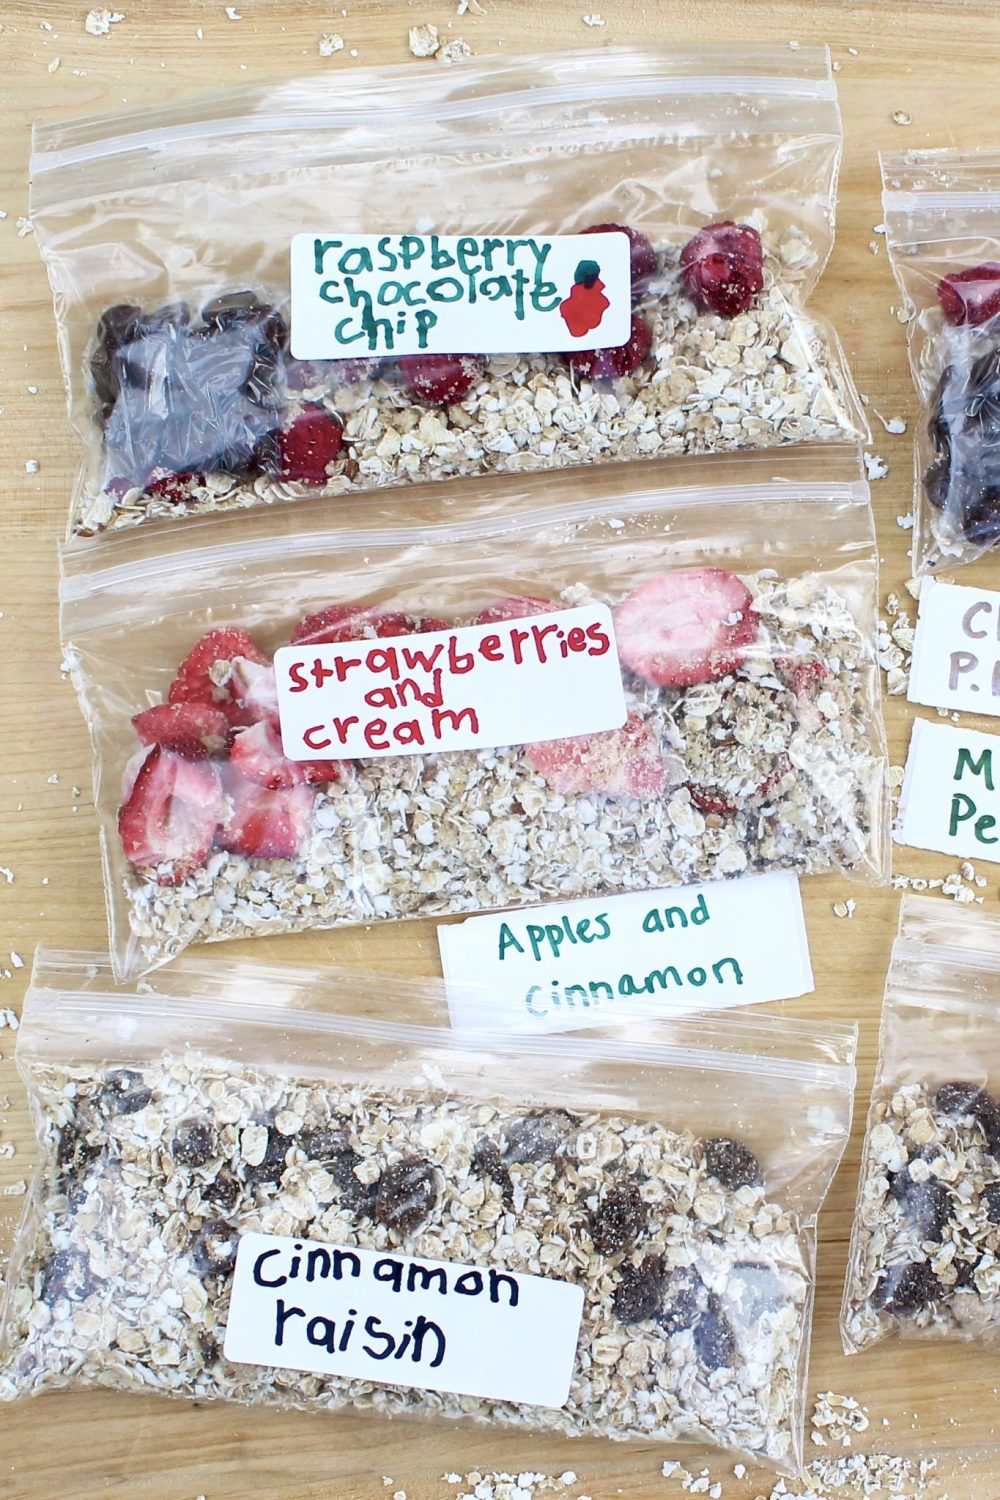 Homemade Instant Oatmeal Packets  ~  Mix and match an extensive list of options to create healthy and economical alternatives to the store-bought packets.  Kid- and adult-friendly!